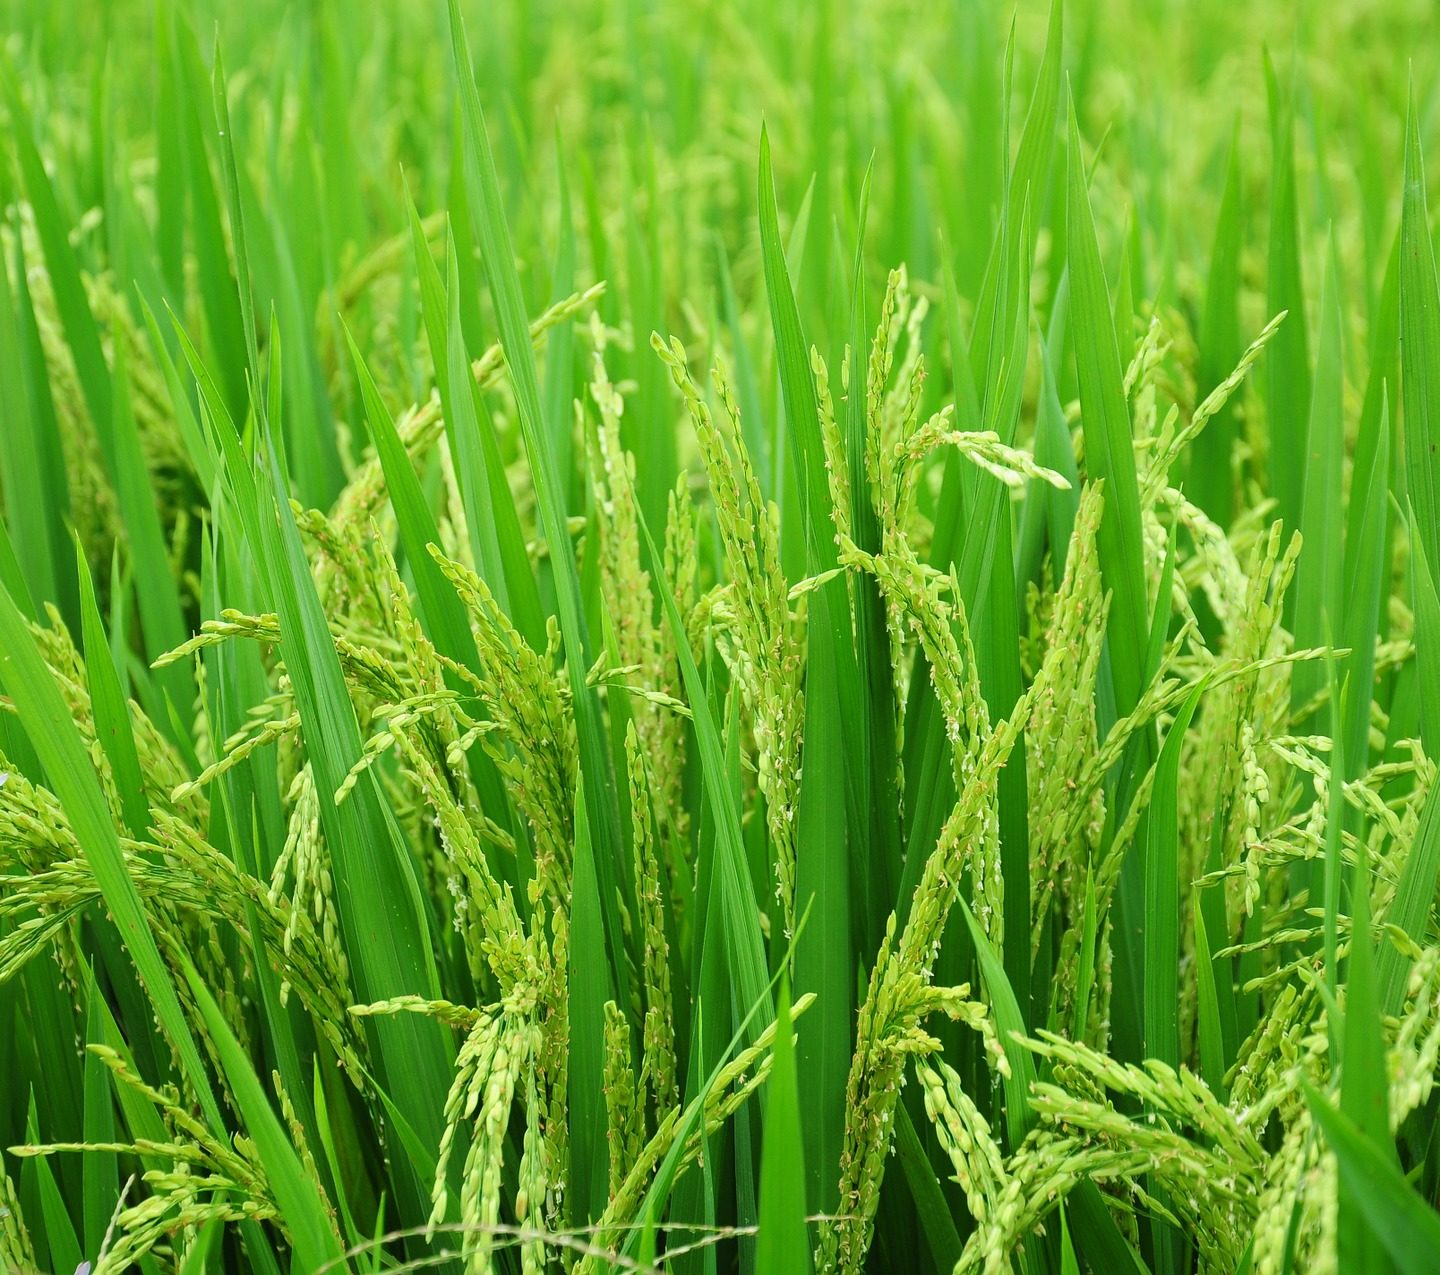 Rice with fewer stomata requires less water and is better suited for climate change